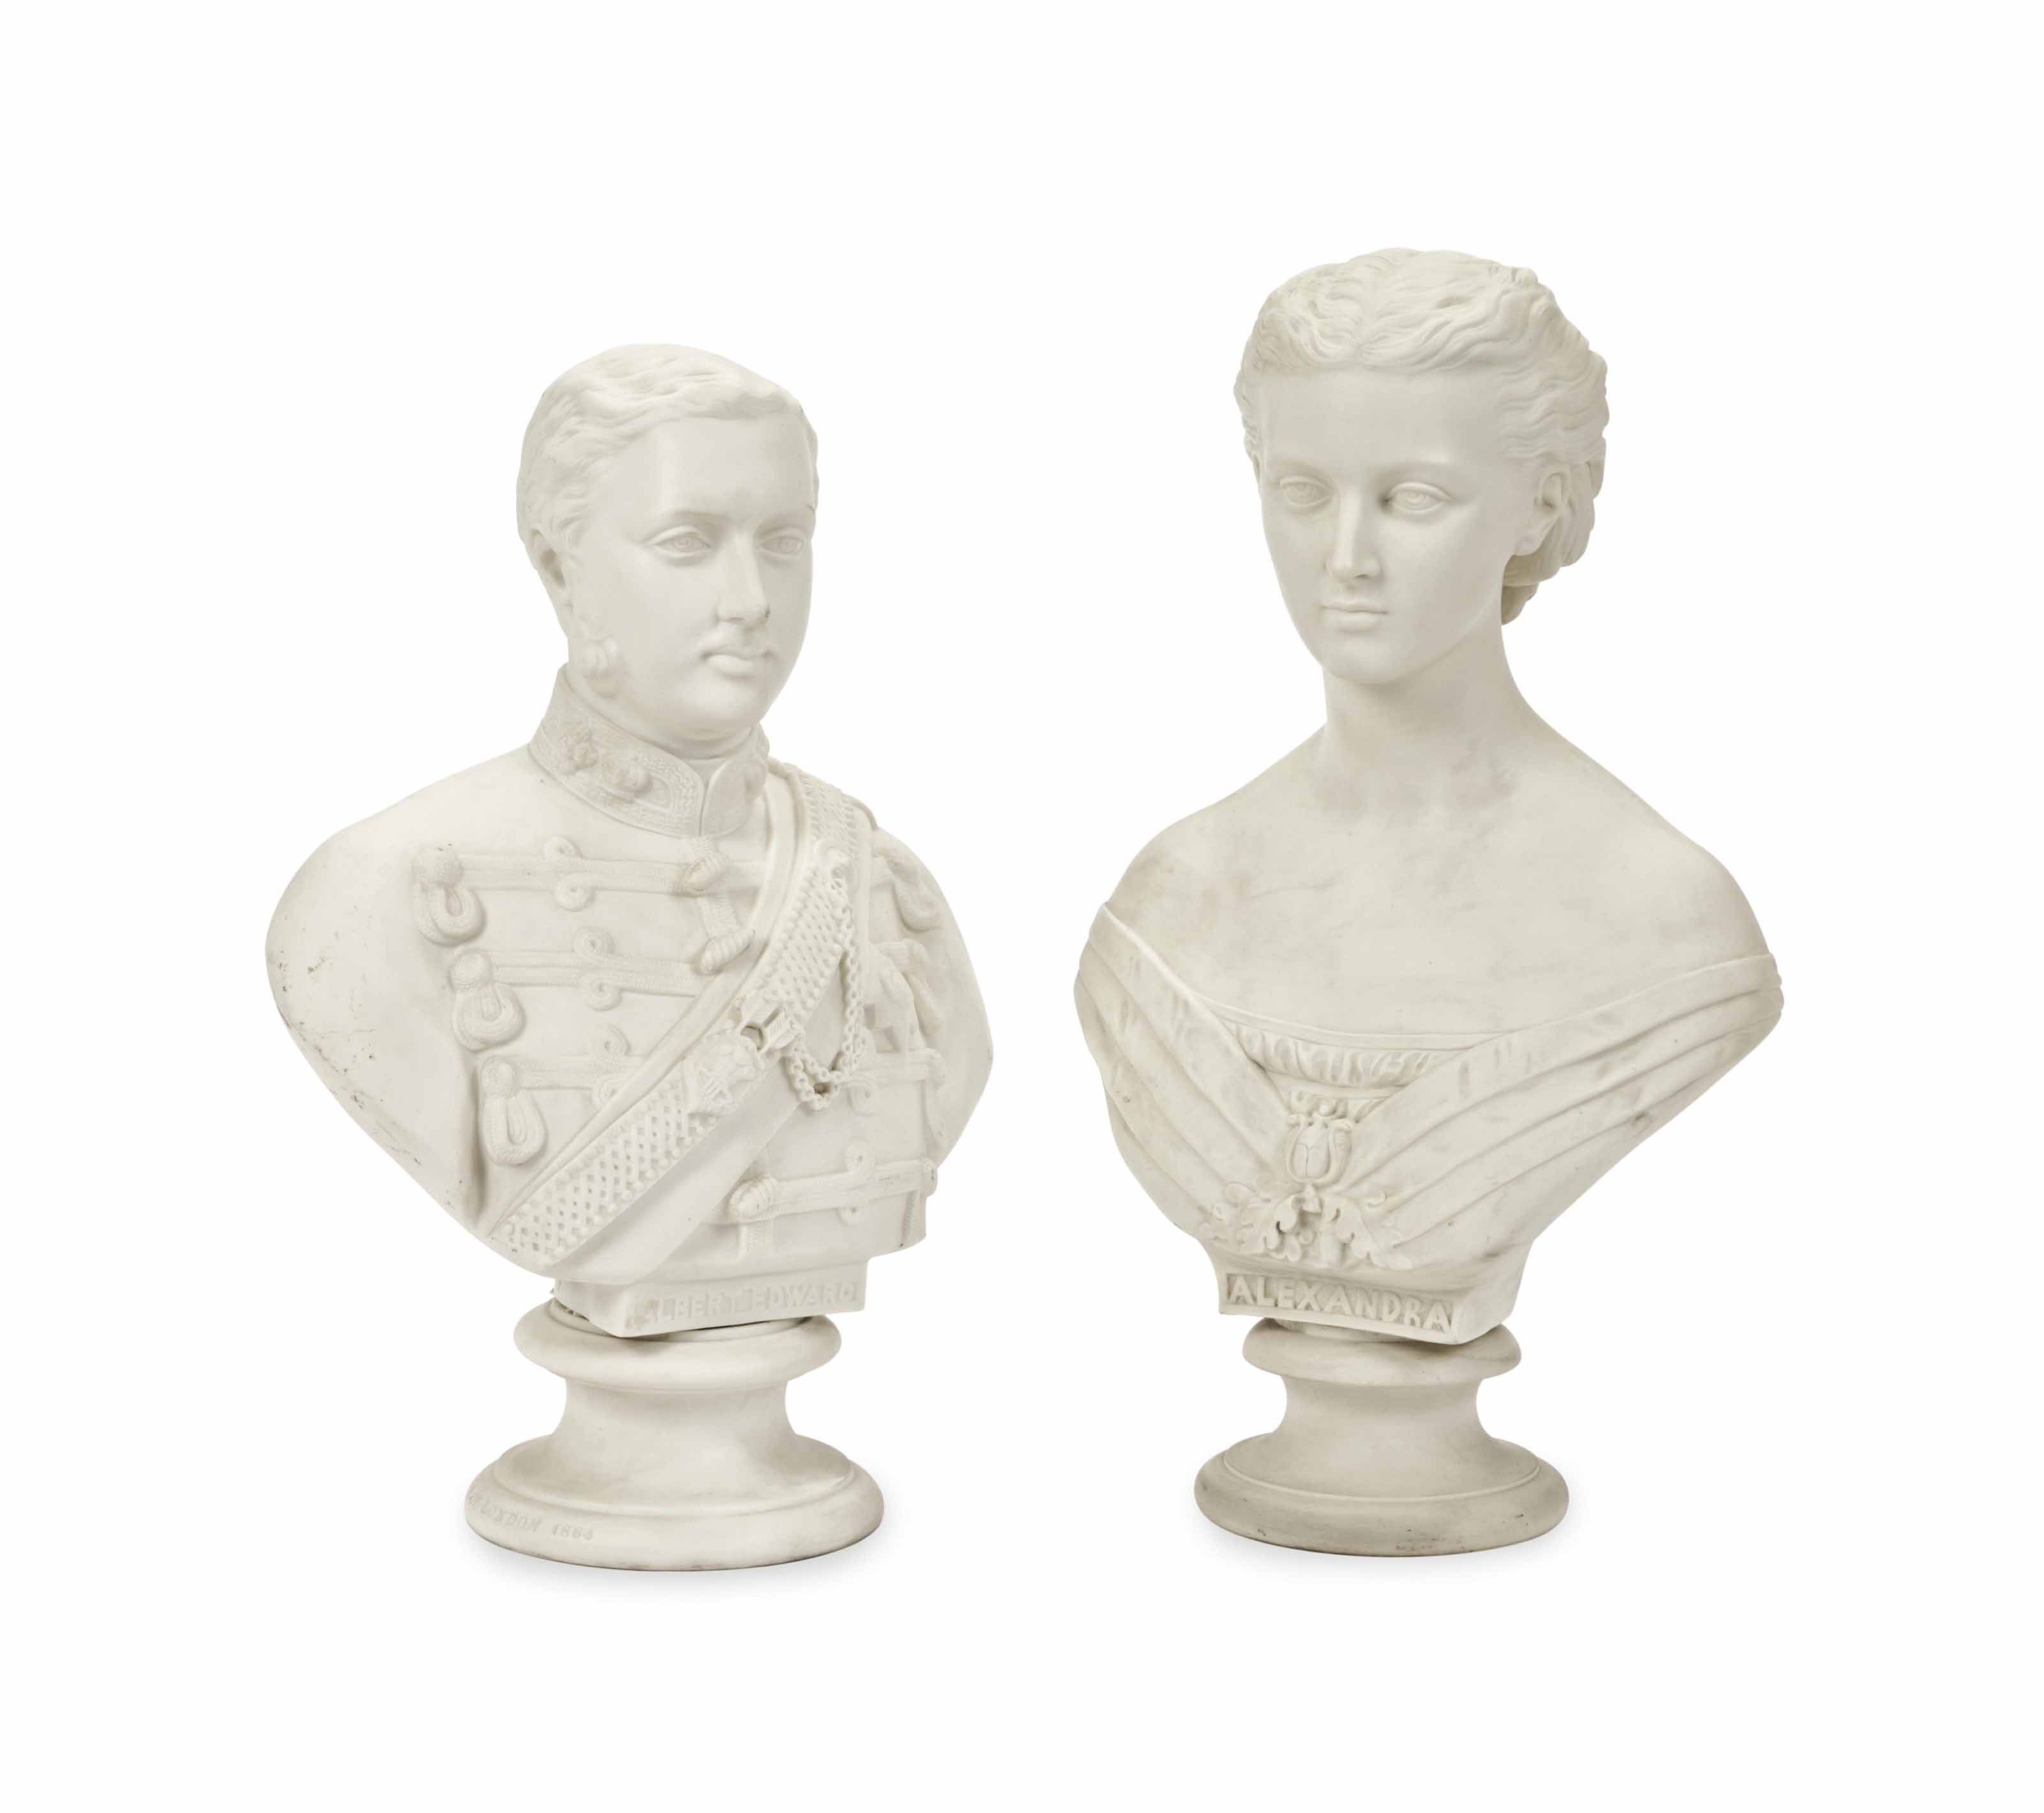 A PAIR OF ENGLISH PARIAN BUSTS